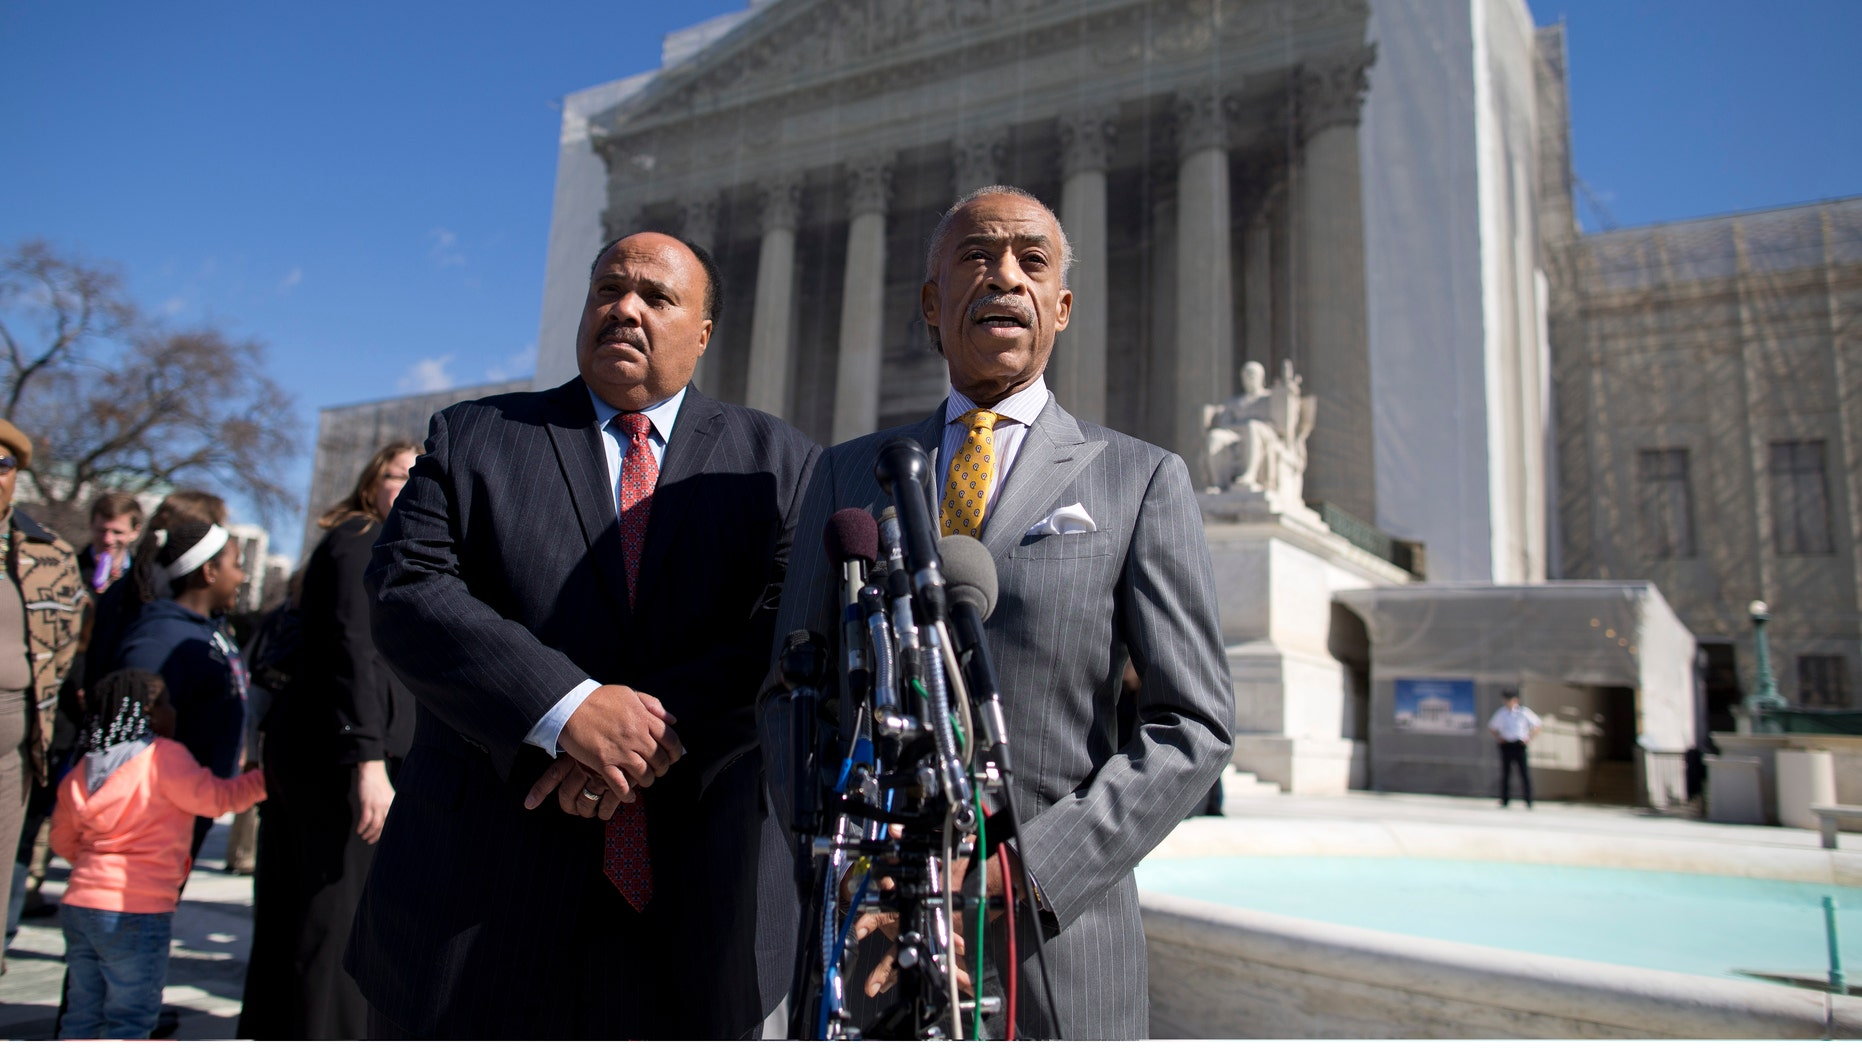 Rev. Al Sharpton, right, and Martin Luther King III meet with reporters outside the Supreme Court in Washington, Wednesday, Feb. 27, 2013, after arguments in the Shelby County, Ala., v. Holder voting rights case.